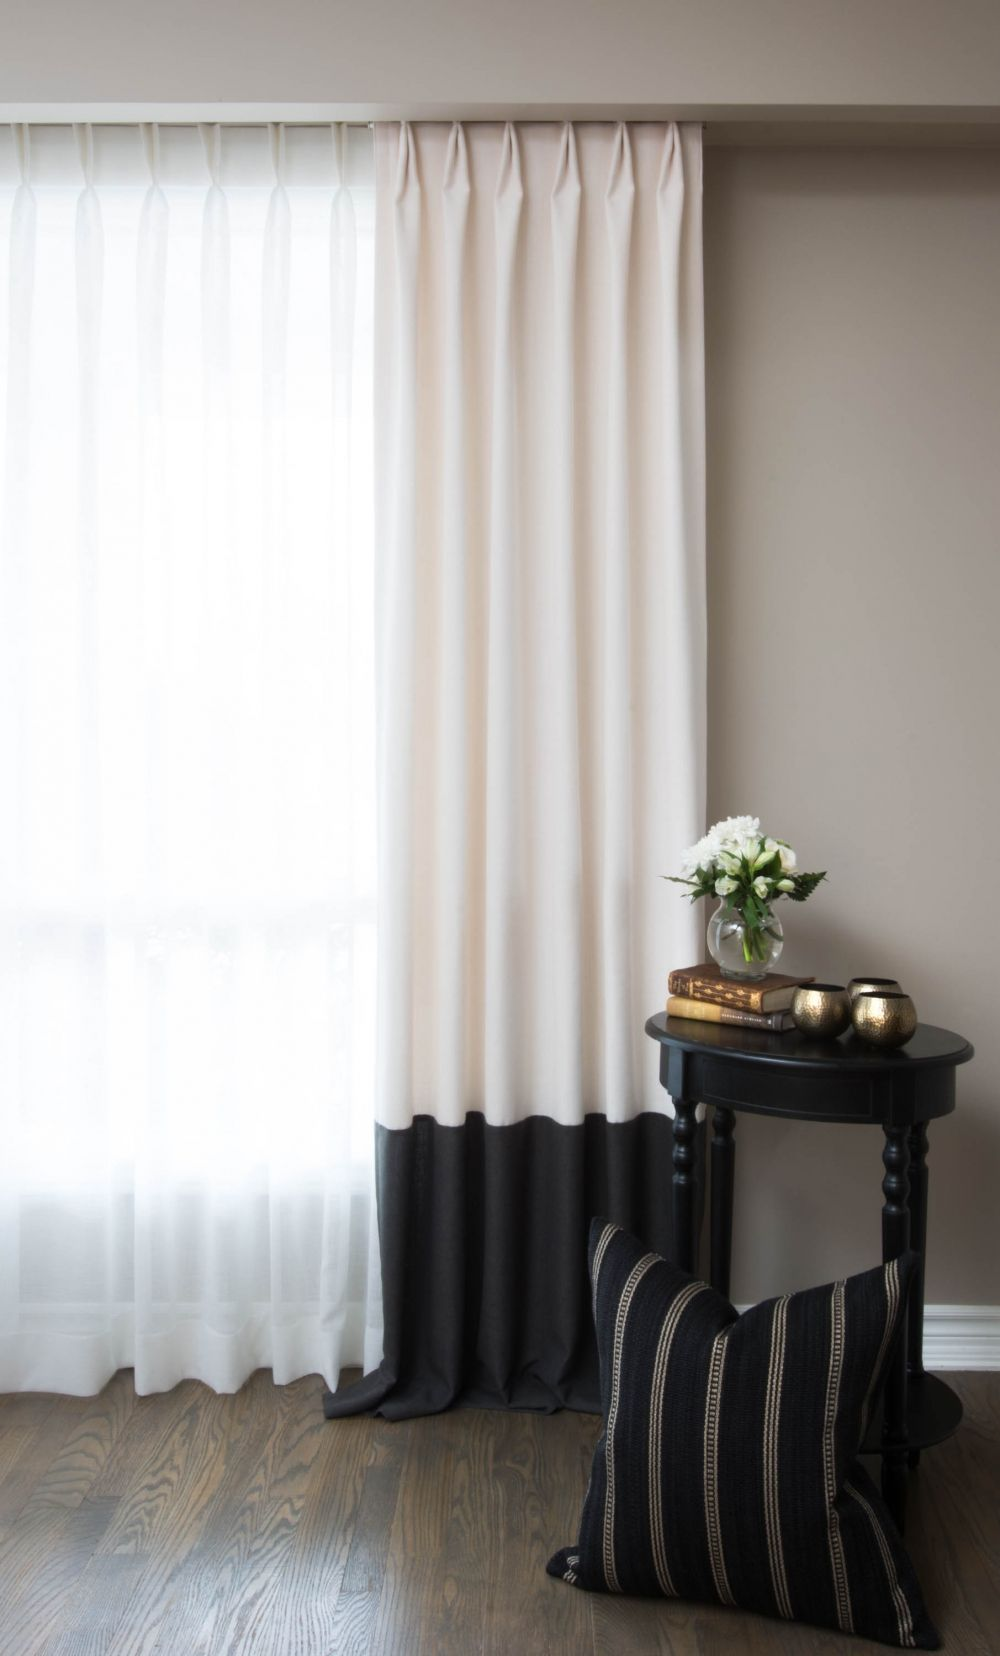 This lovely House Linen Bottom Banded Perfect Panel by Q. Design is a great  option for custom drapery that is quick and easy and ships right to your  door.